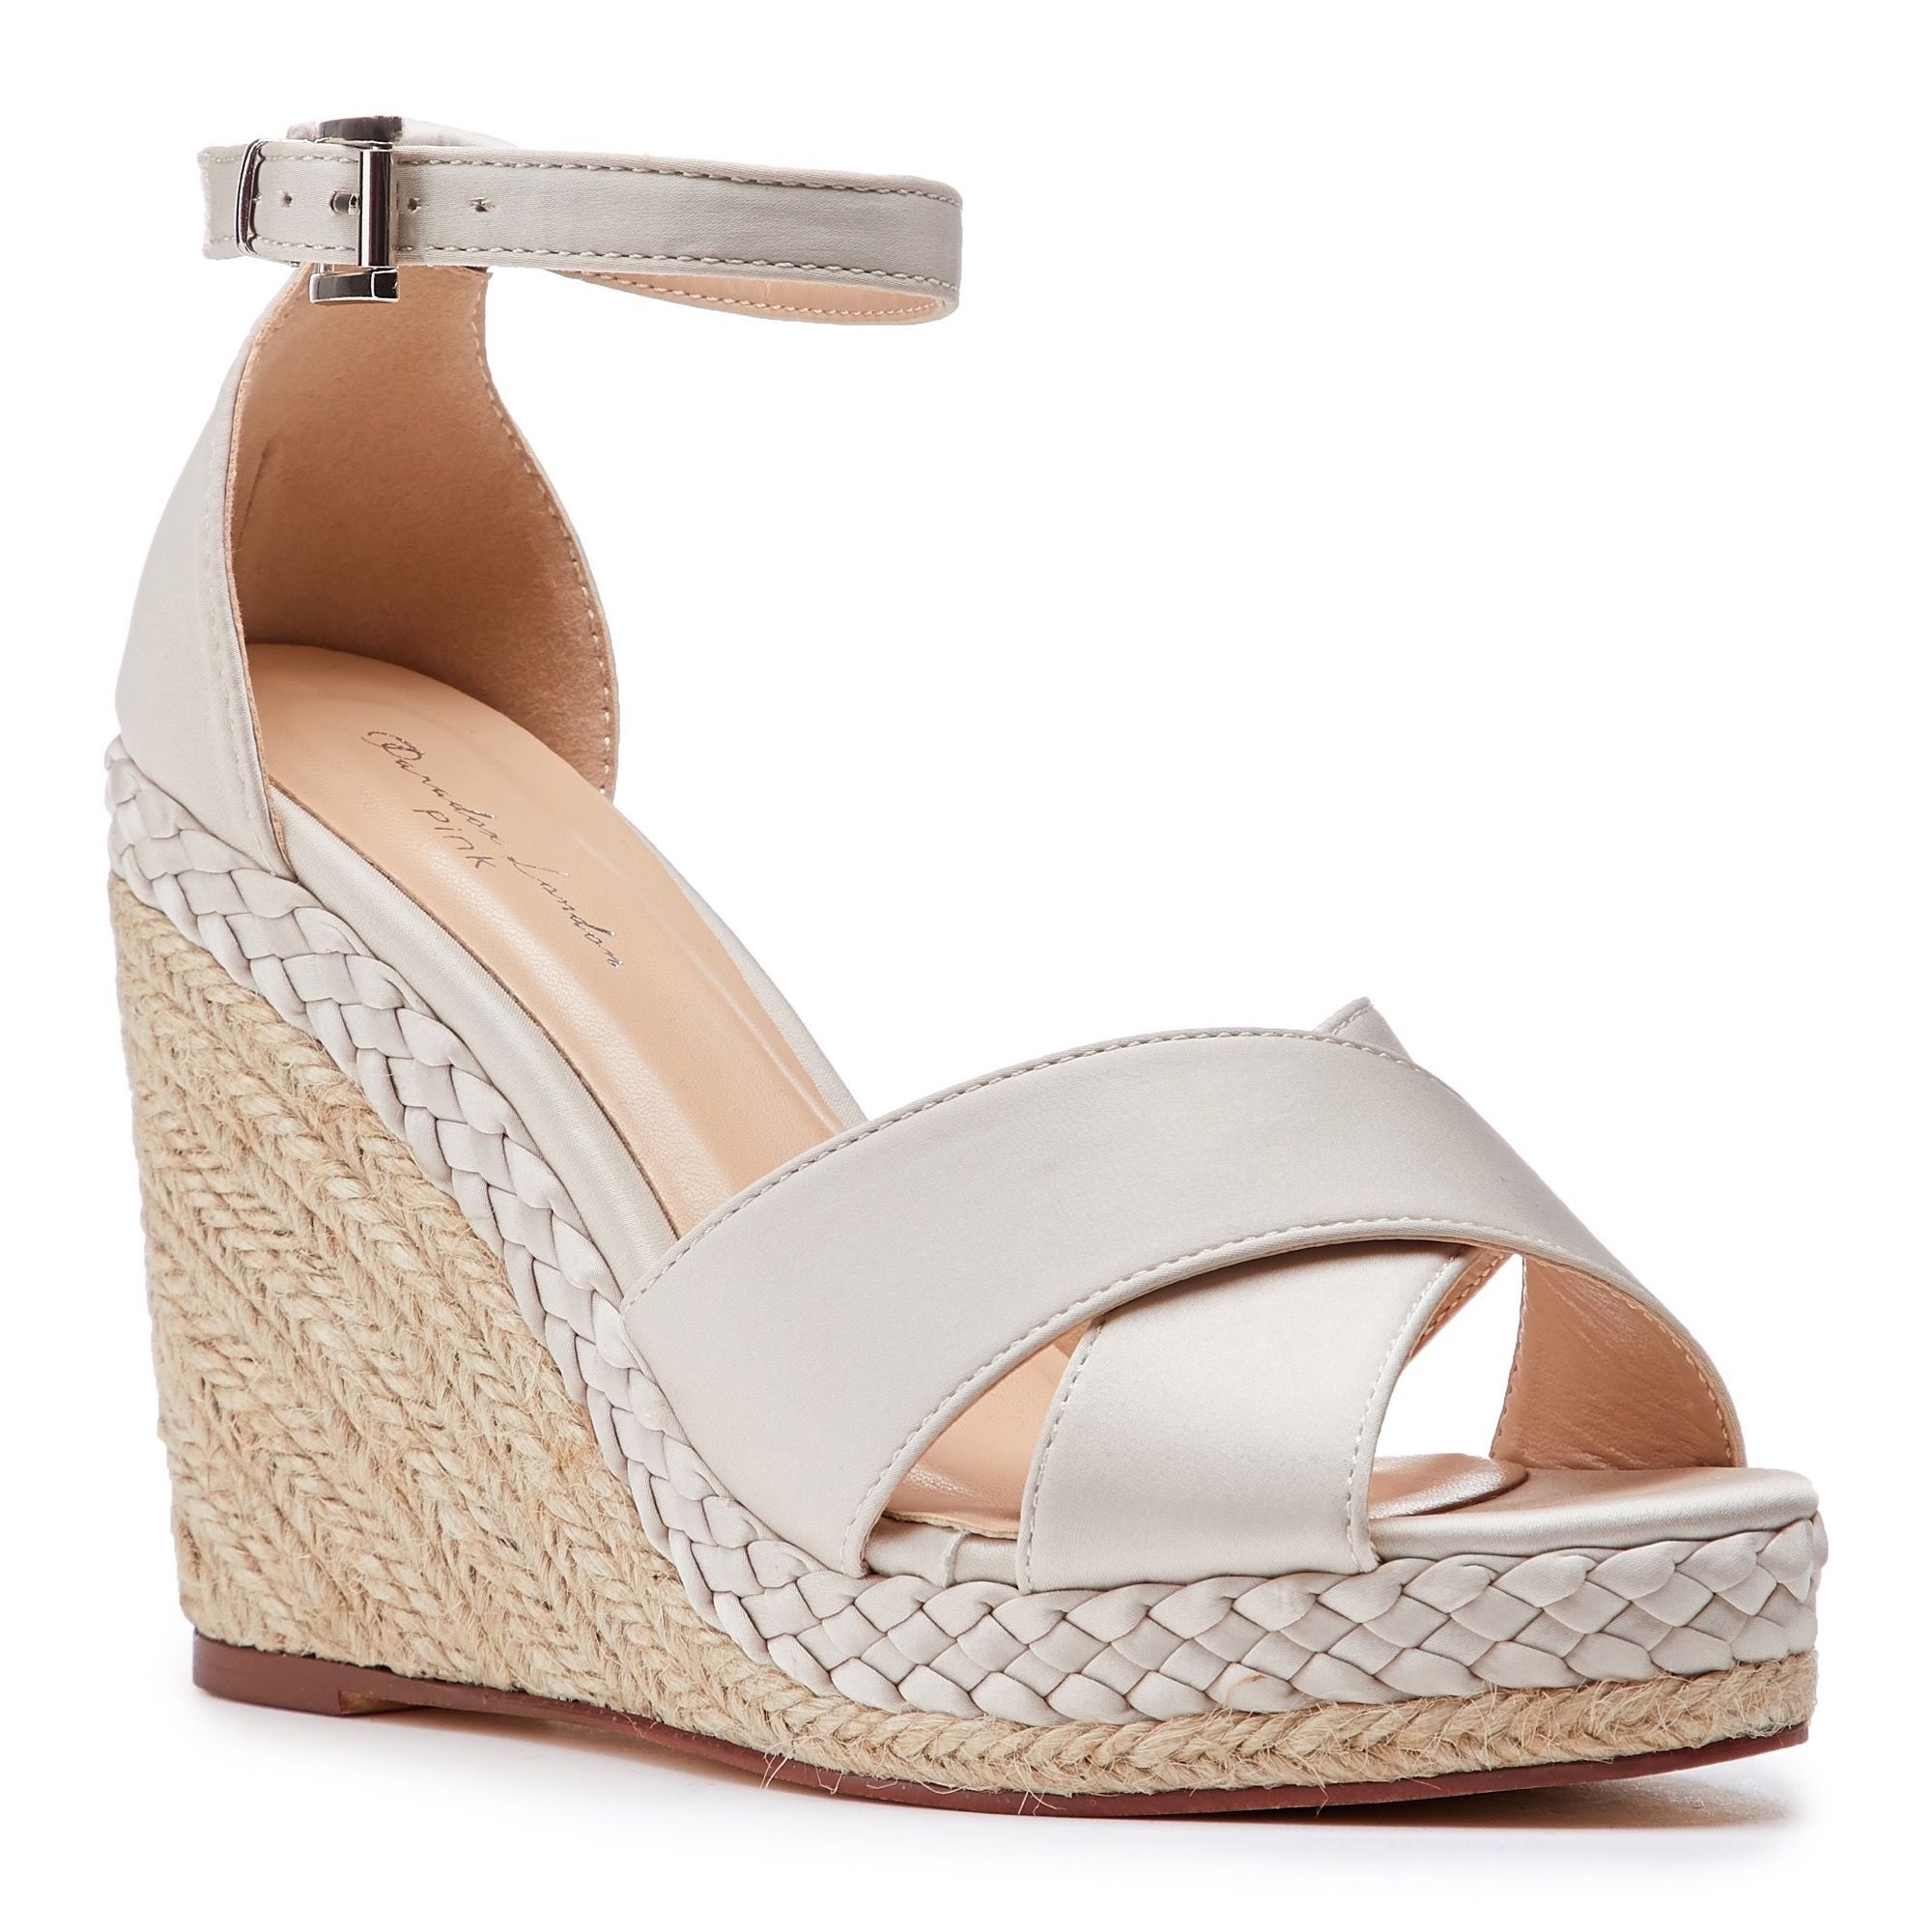 65264ca770635 Yolanda Champagne High Heel Ankle Strap Crossover Espadrille | Wedge  Sandals | Espadrille | Occasion Shoes | Paradox London